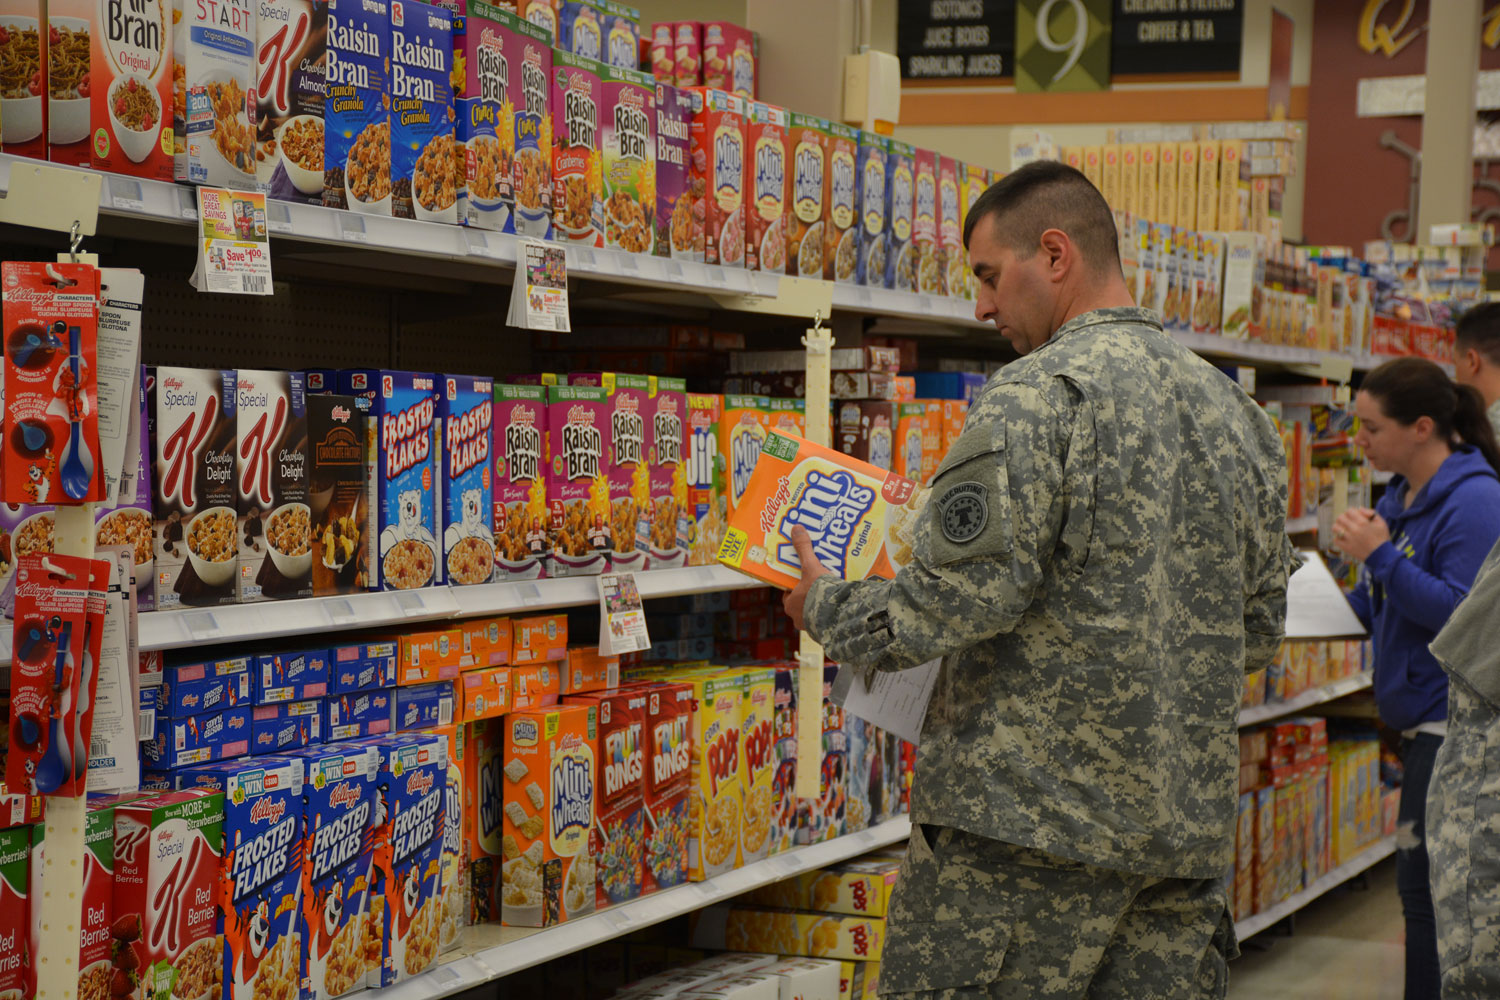 proposed food stamp cuts would hit military families